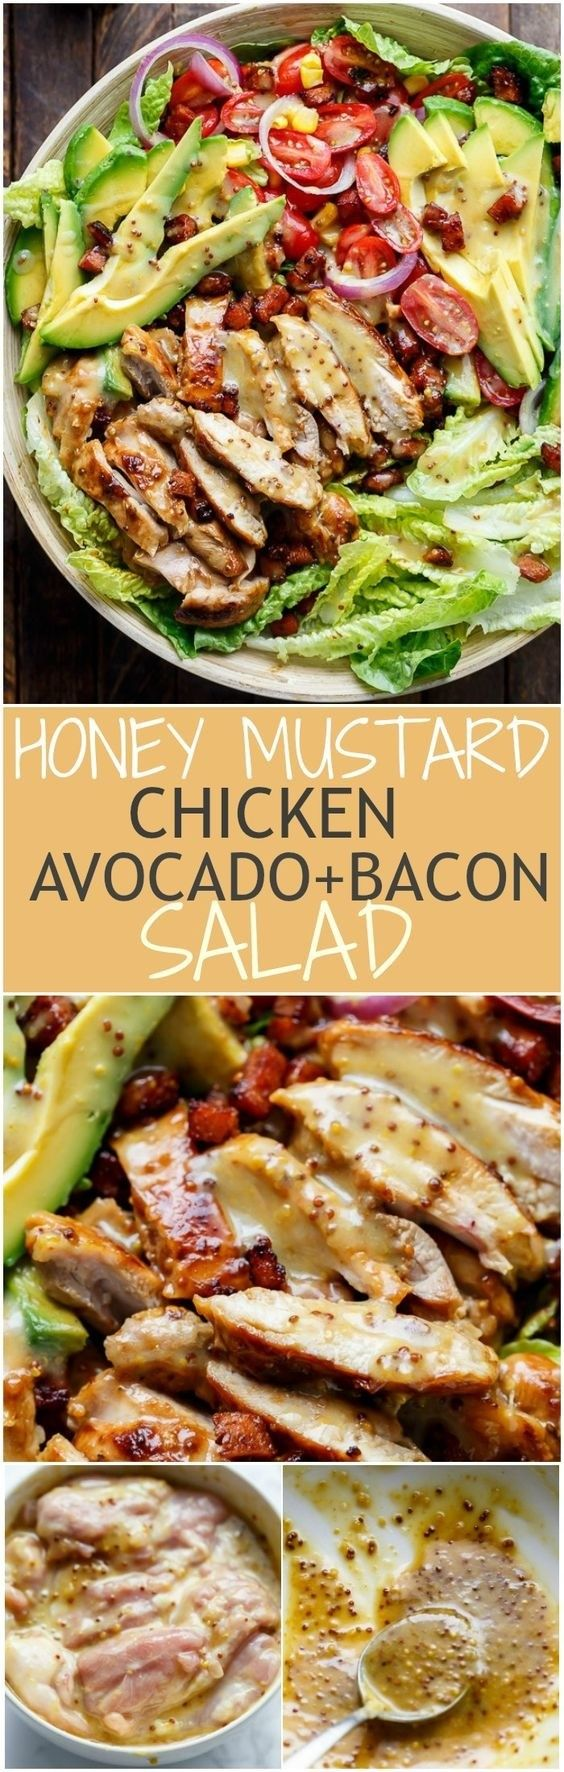 Honey Mustard Chicken, Avocado, and Bacon Salad   These Are The Most Popular Bacon Recipes On Pinterest